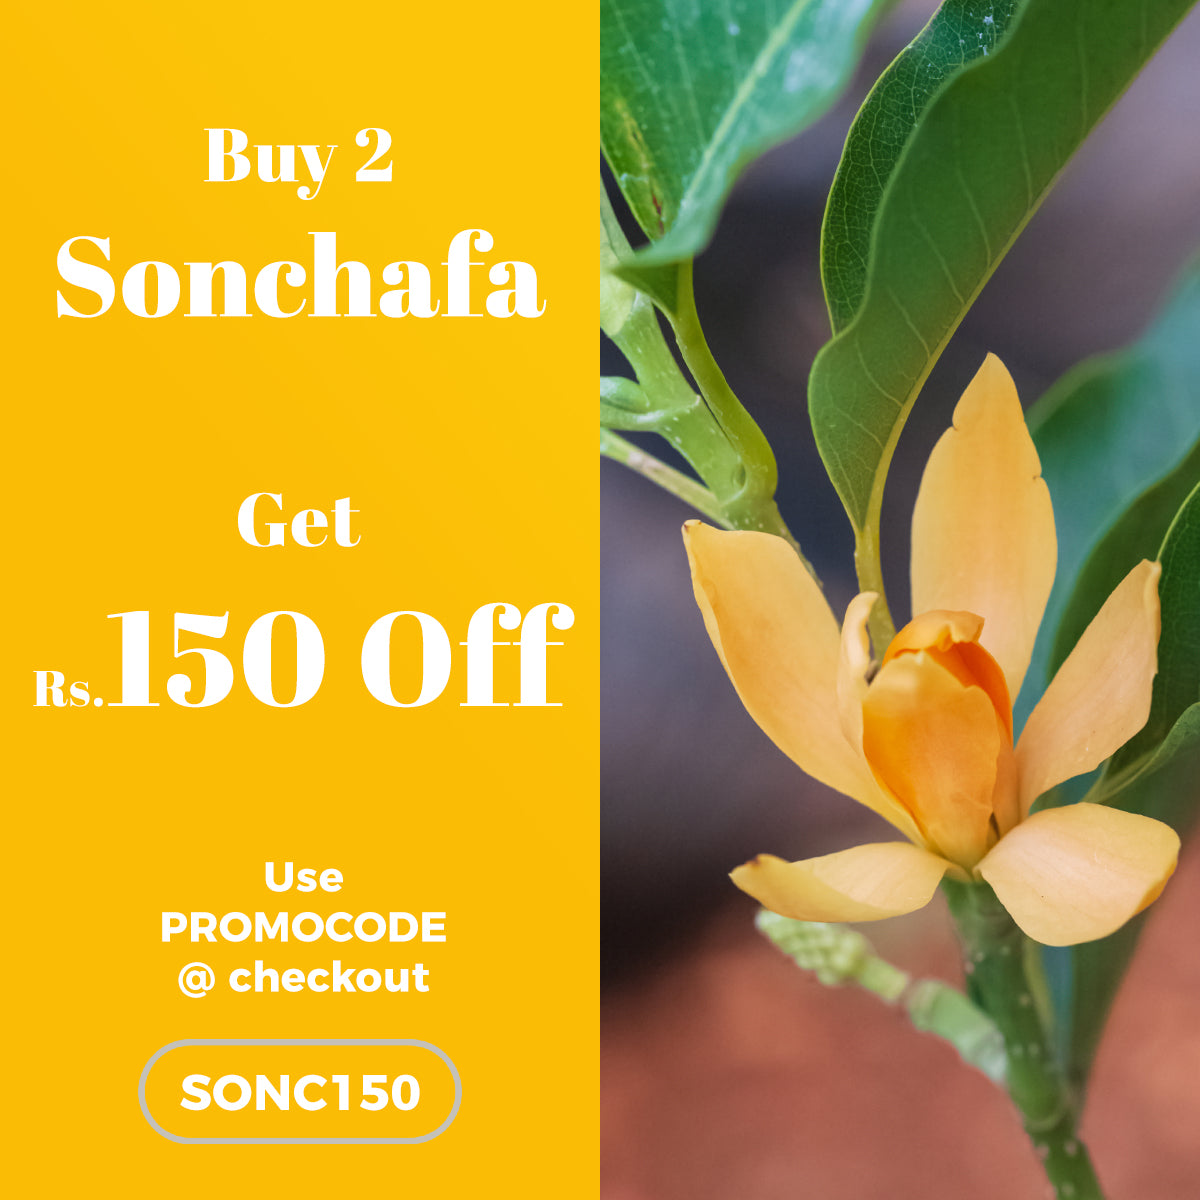 Buy 2 Sonchafa Plant and get Rs.150 OFF